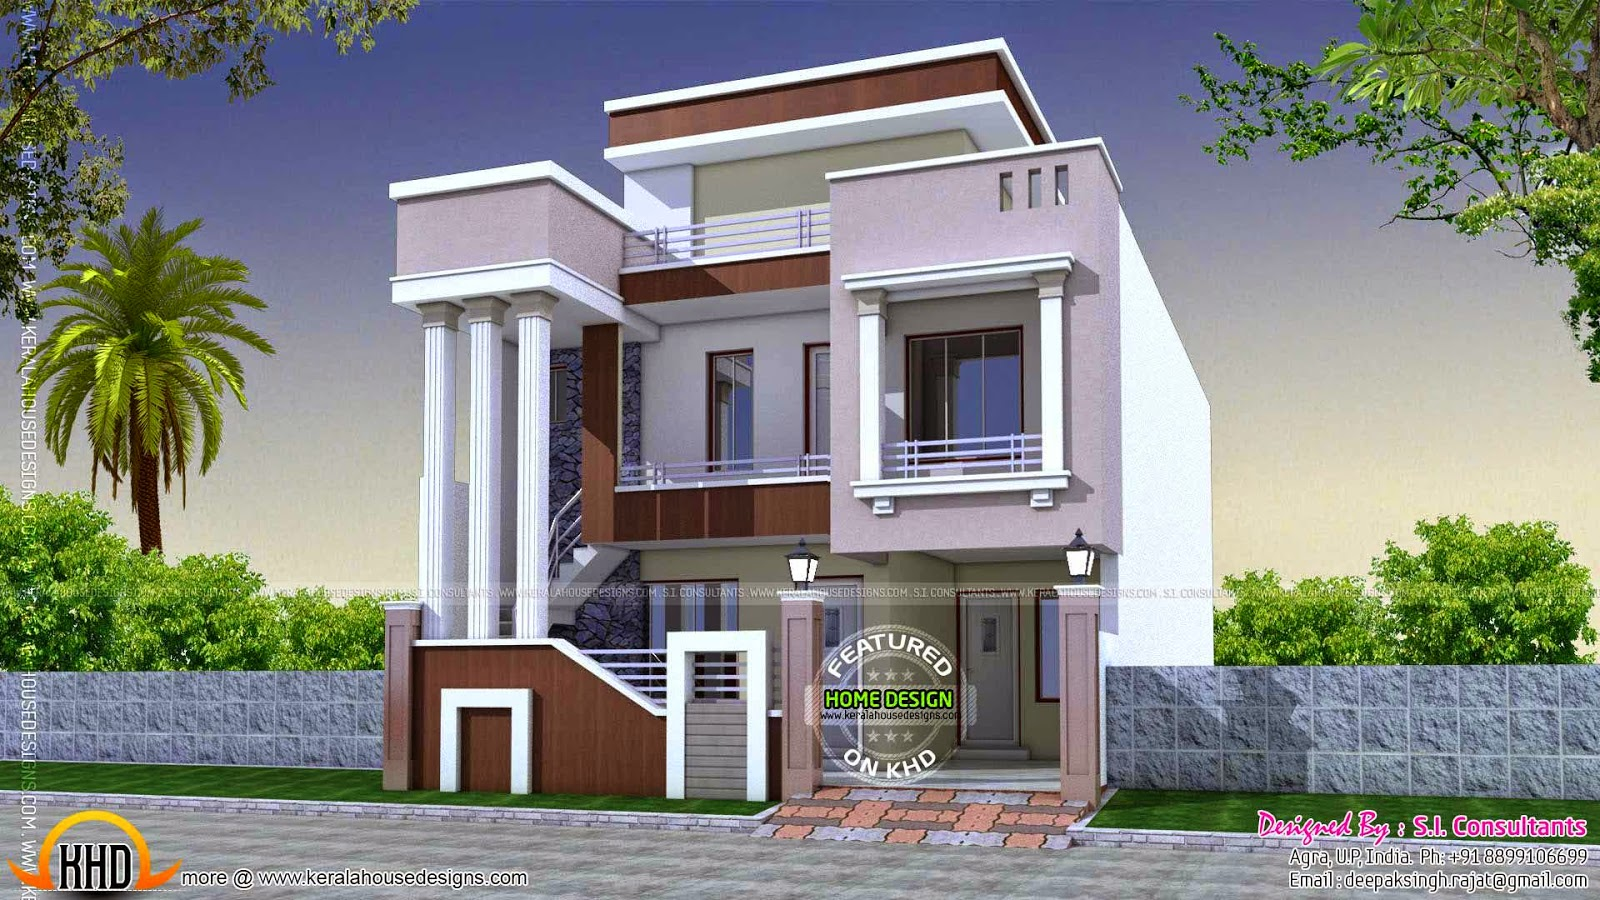 Cute Modern Home With Long Pillars Kerala Design